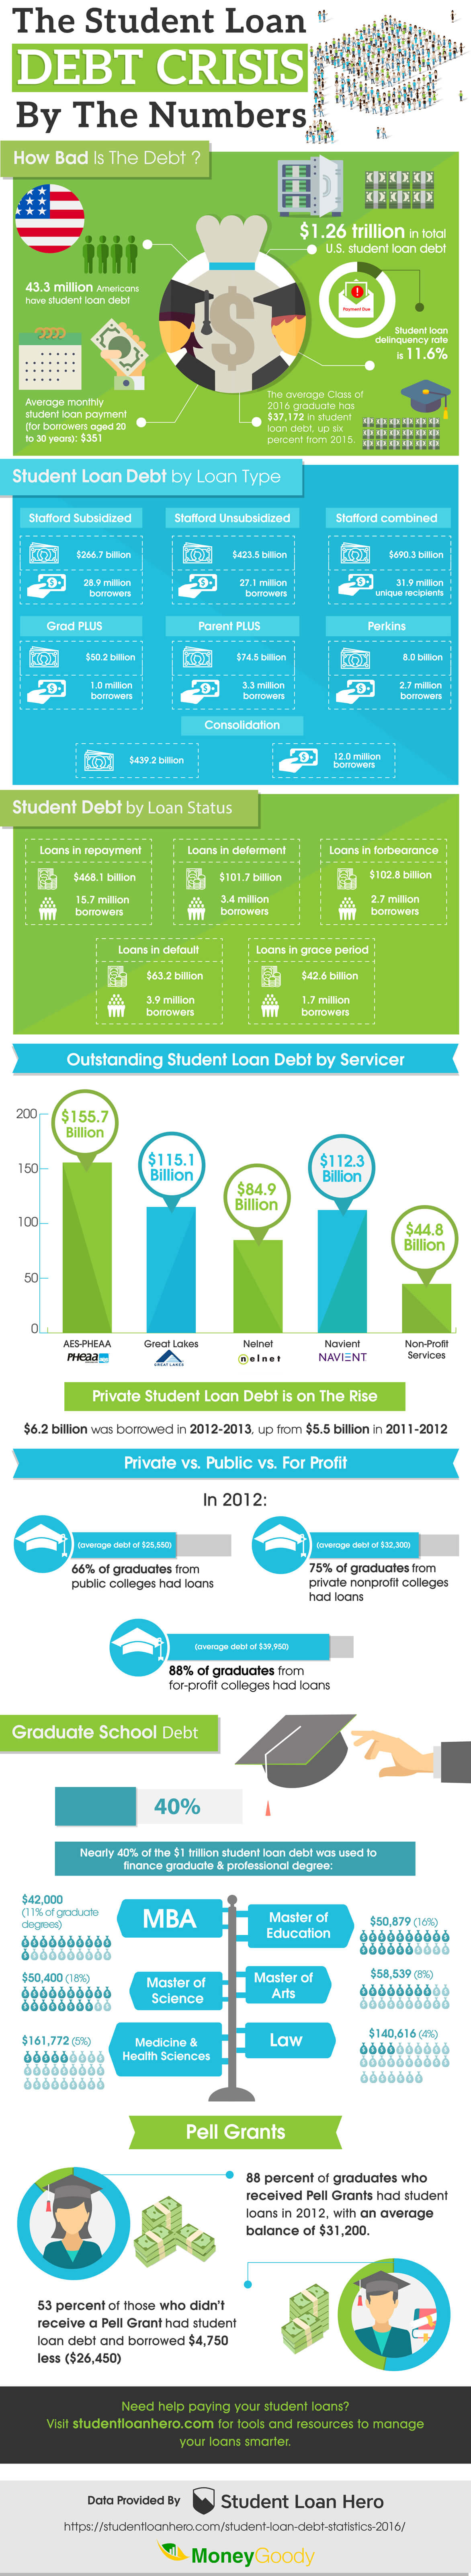 The Student Loan Debt Crisis